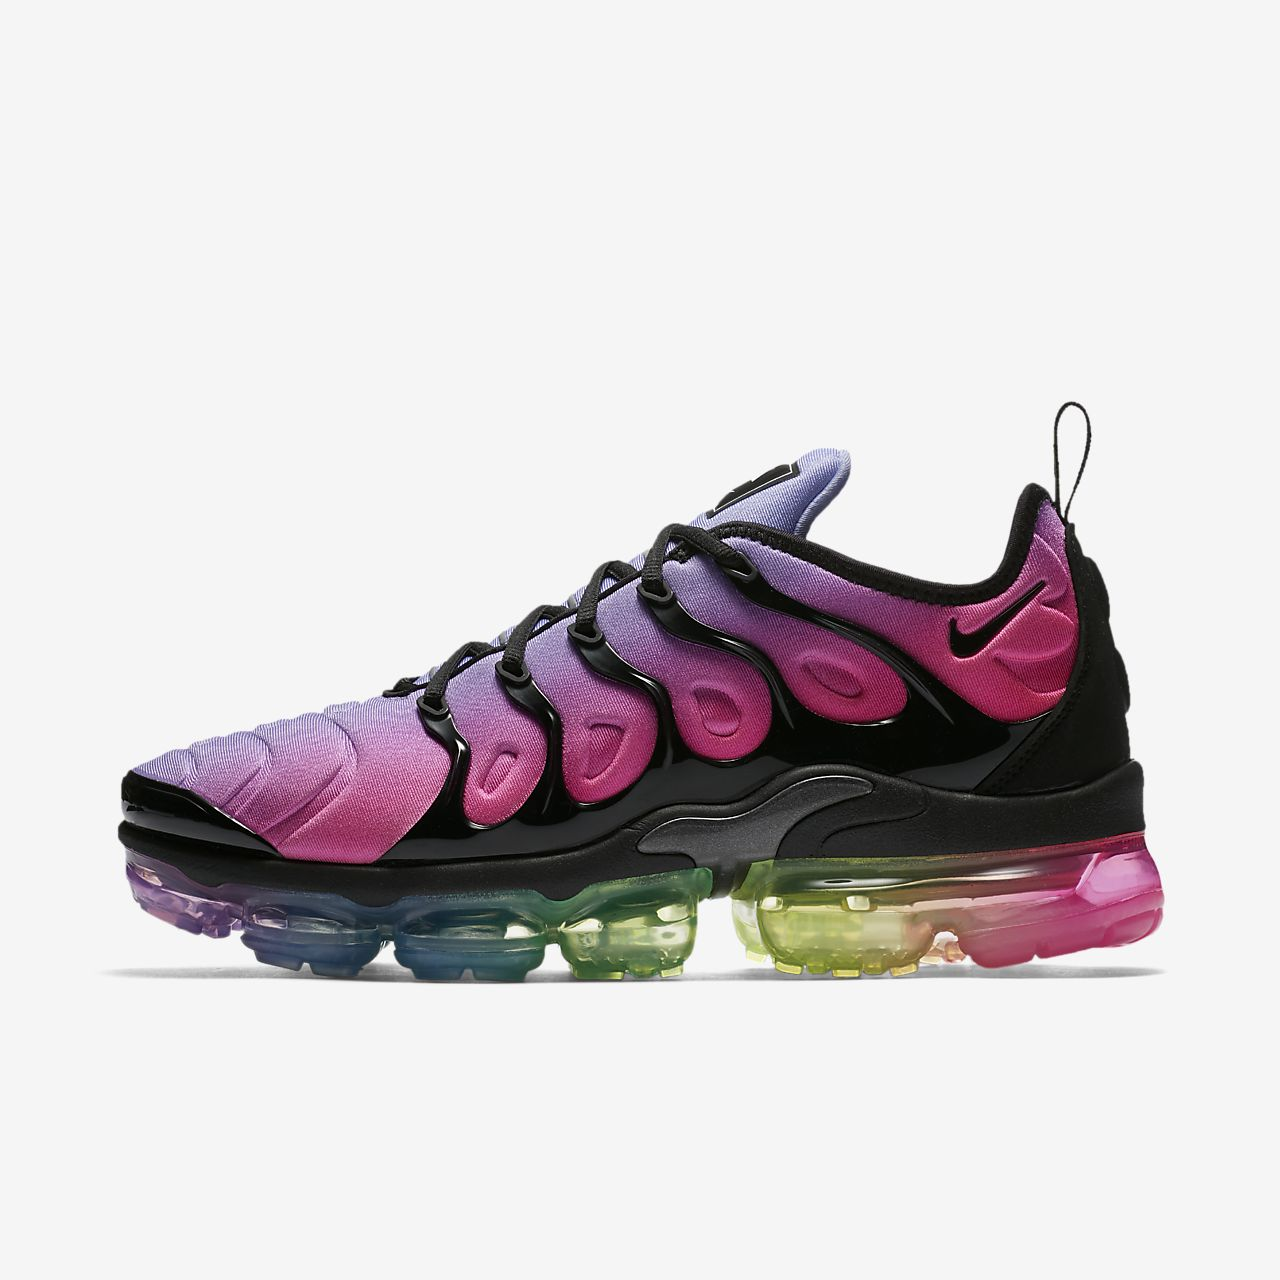 33ac8bd26d5 Nike Air VaporMax Plus BETRUE Men s Shoe. Nike.com AU